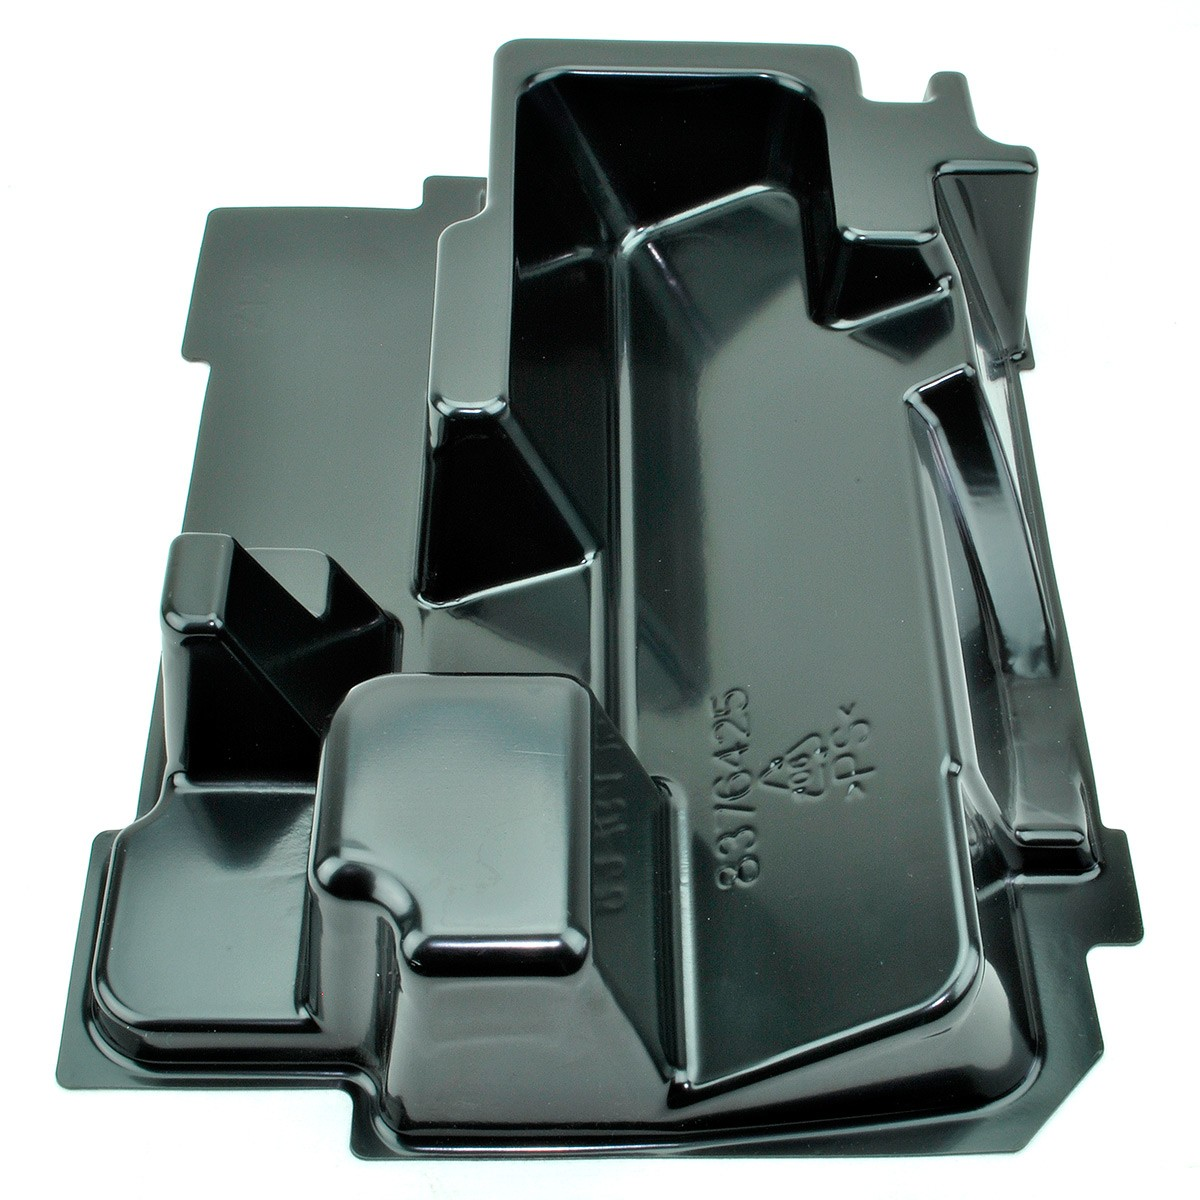 Makita 837642-5 DSS610 DSS611 Inlay Tray for Makpac Type 3 Connector Case